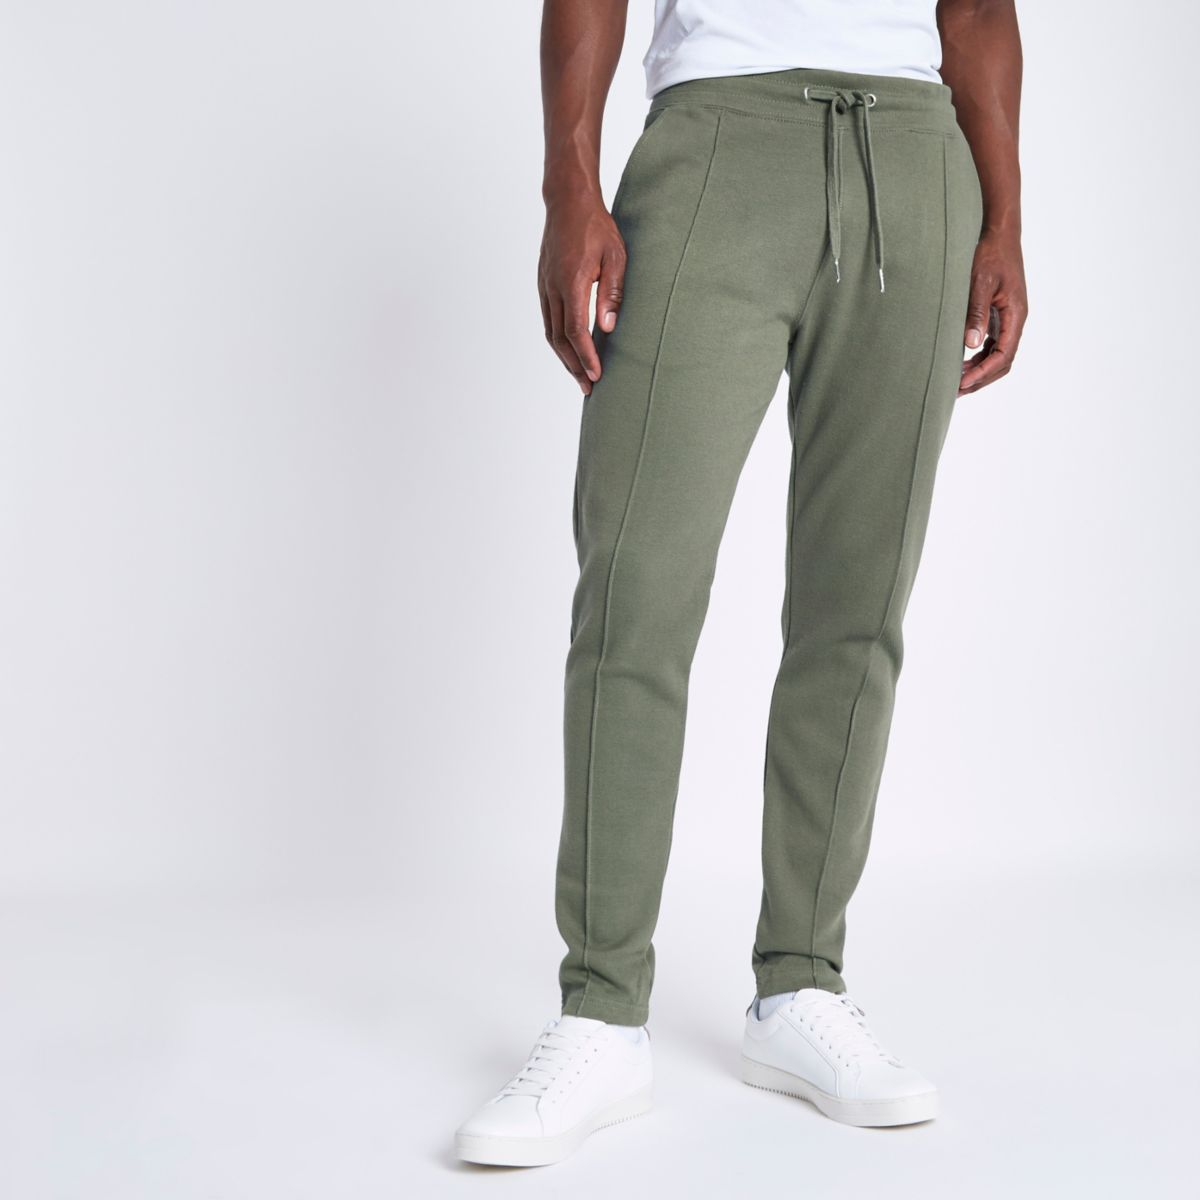 Green muscle fit pique joggers